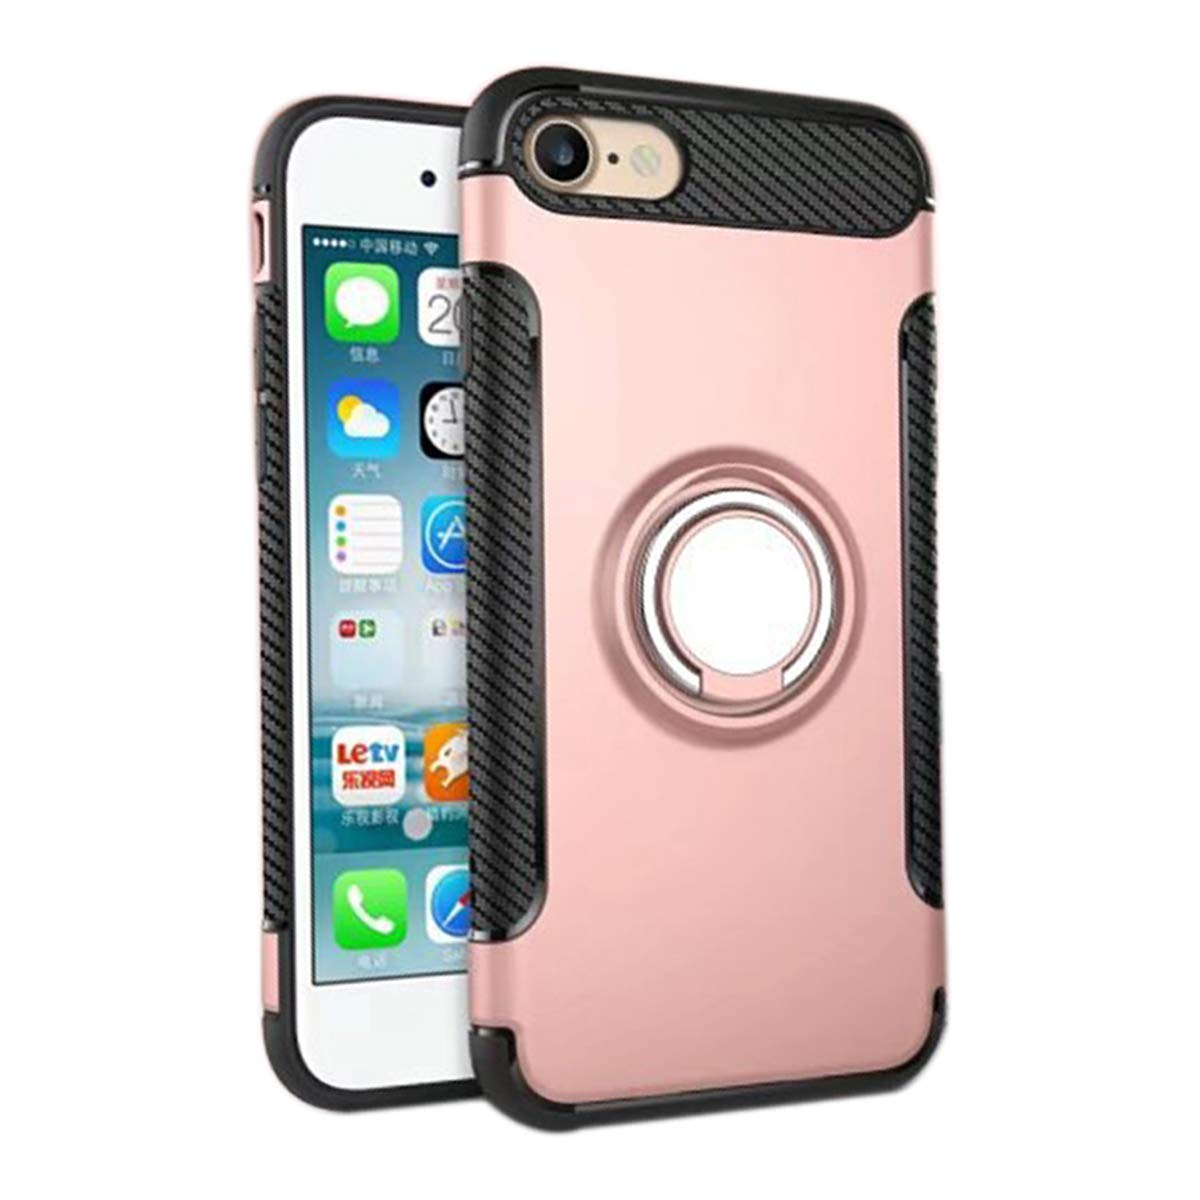 Ldea iPhone 6/6S Plus Case, Hybrid TPU+PC Car Holder Stand Magnetic Suction Bracket Finger Ring Shockproof Case Cover for Apple iPhone 6/6S Plus (Rose Gold) by Ldea